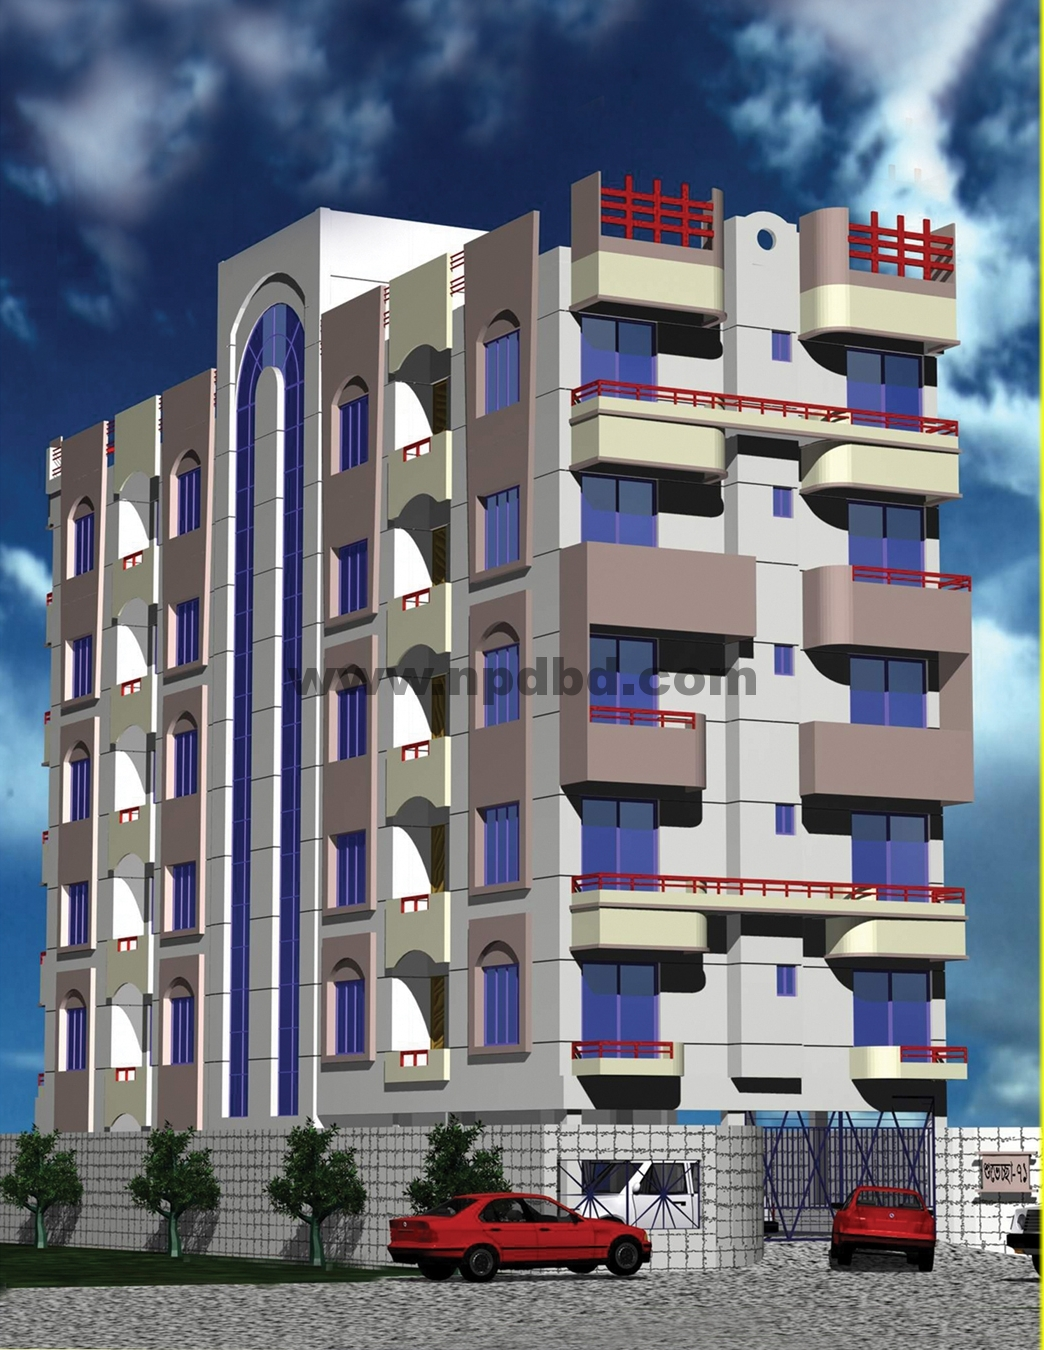 3D Building View http://www.npdbd.com/projects/view/66/Shubaccha_71/Amborkhana